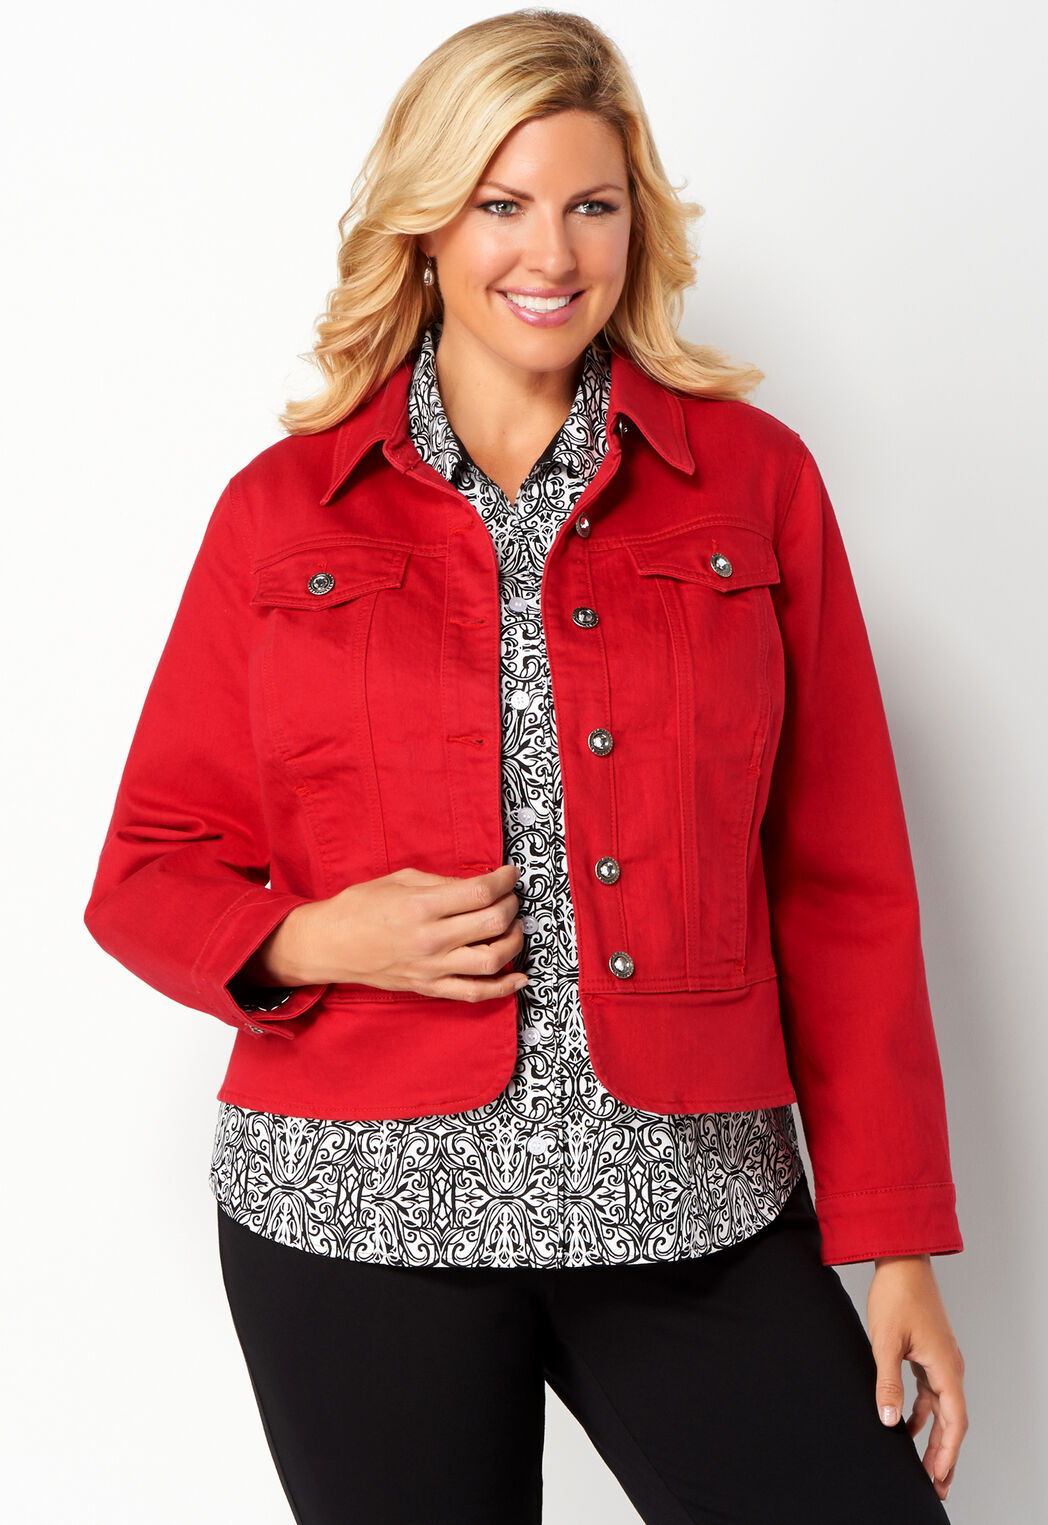 Women's Plus Sized Red Denim Jacket from Christopher & Banks® | CJ ...